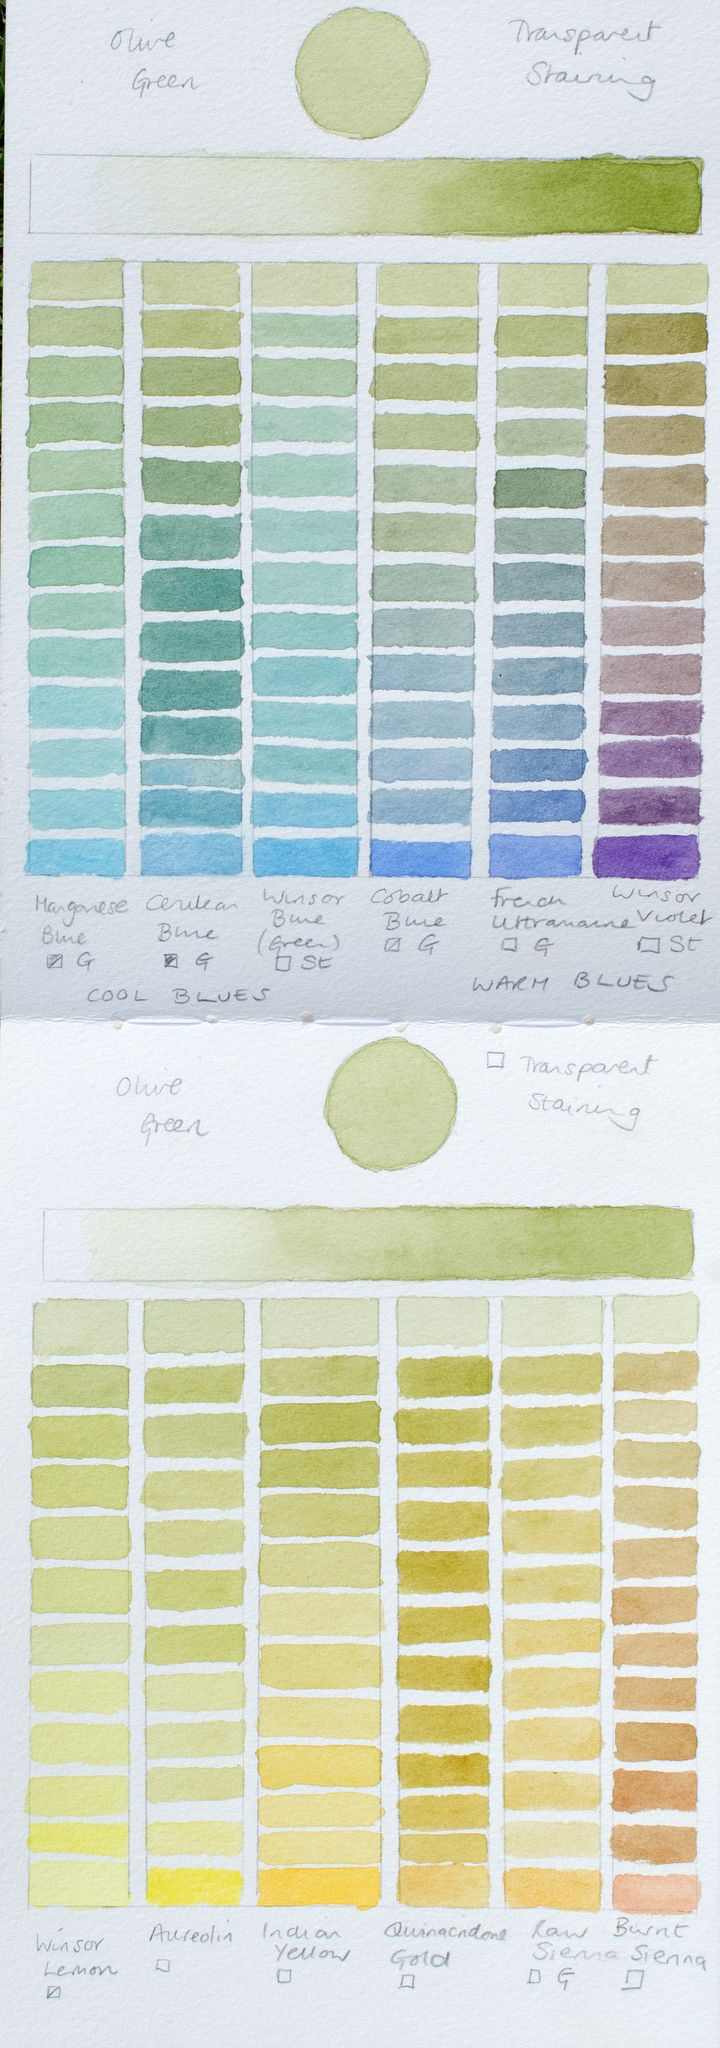 Olive Greens Colour Chart   Flickr - Photo Sharing!